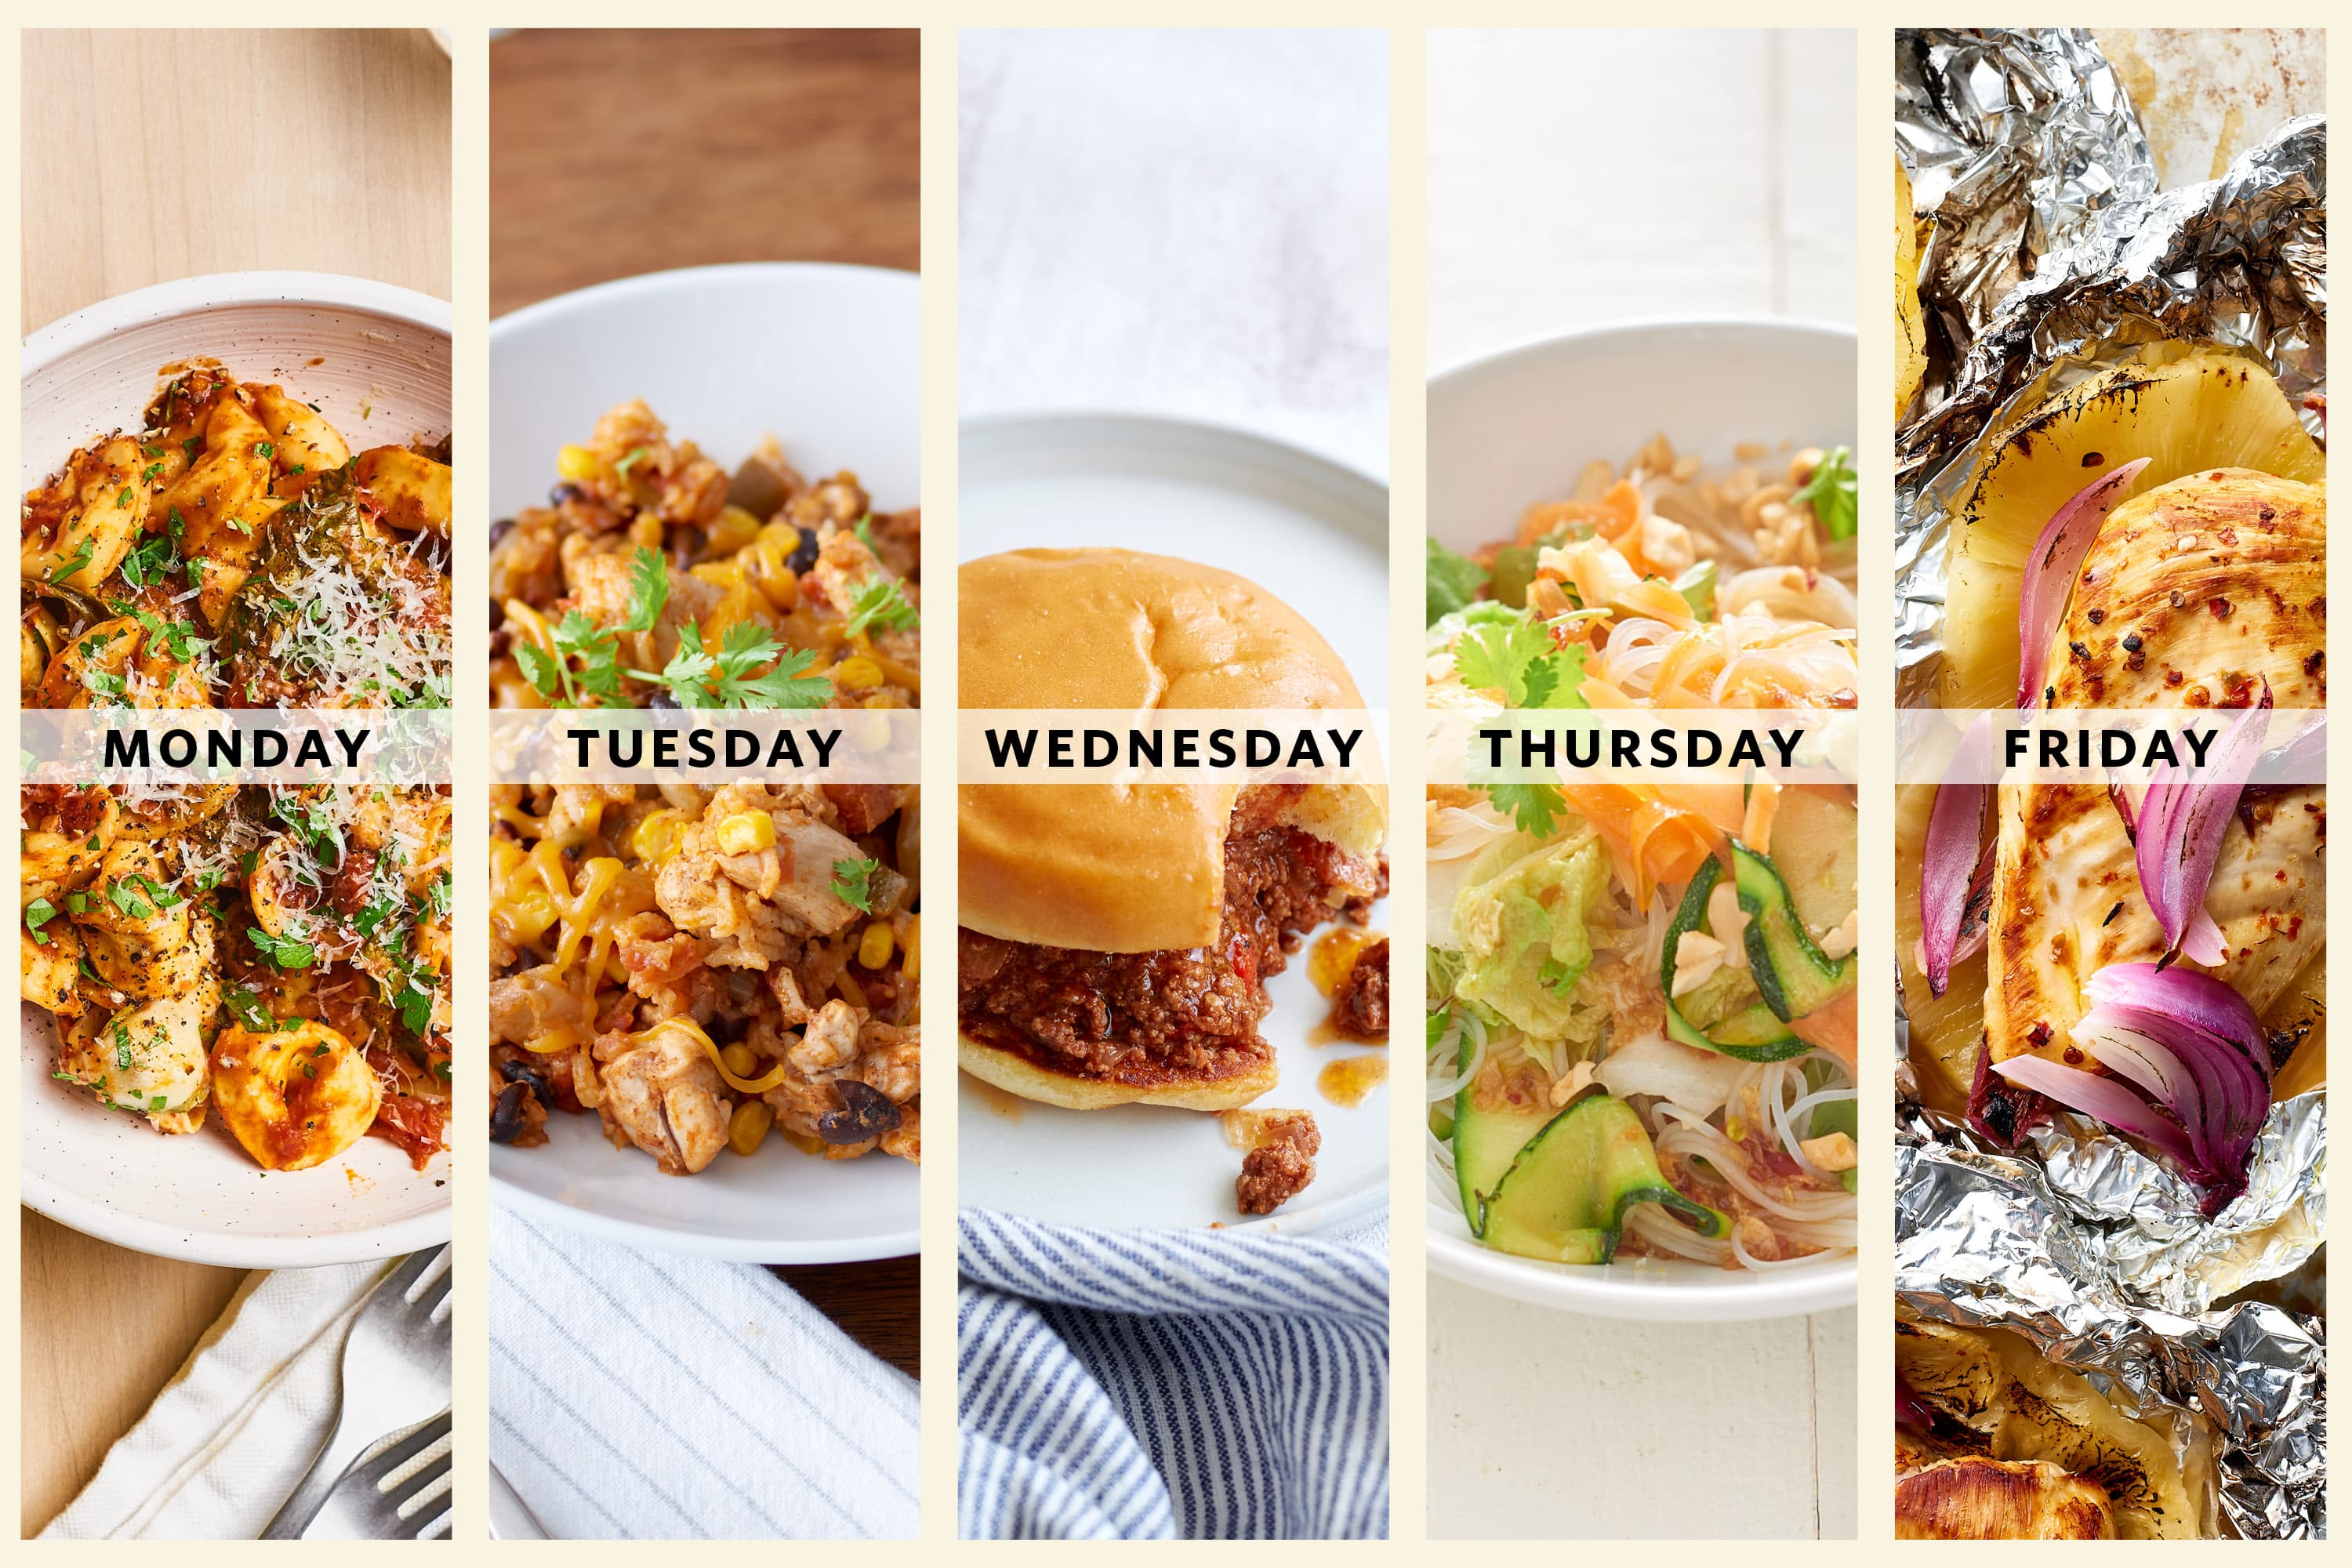 Next Week's Meal Plan: A Week of Oven-Free Dinners When It's Too Hot to Cook